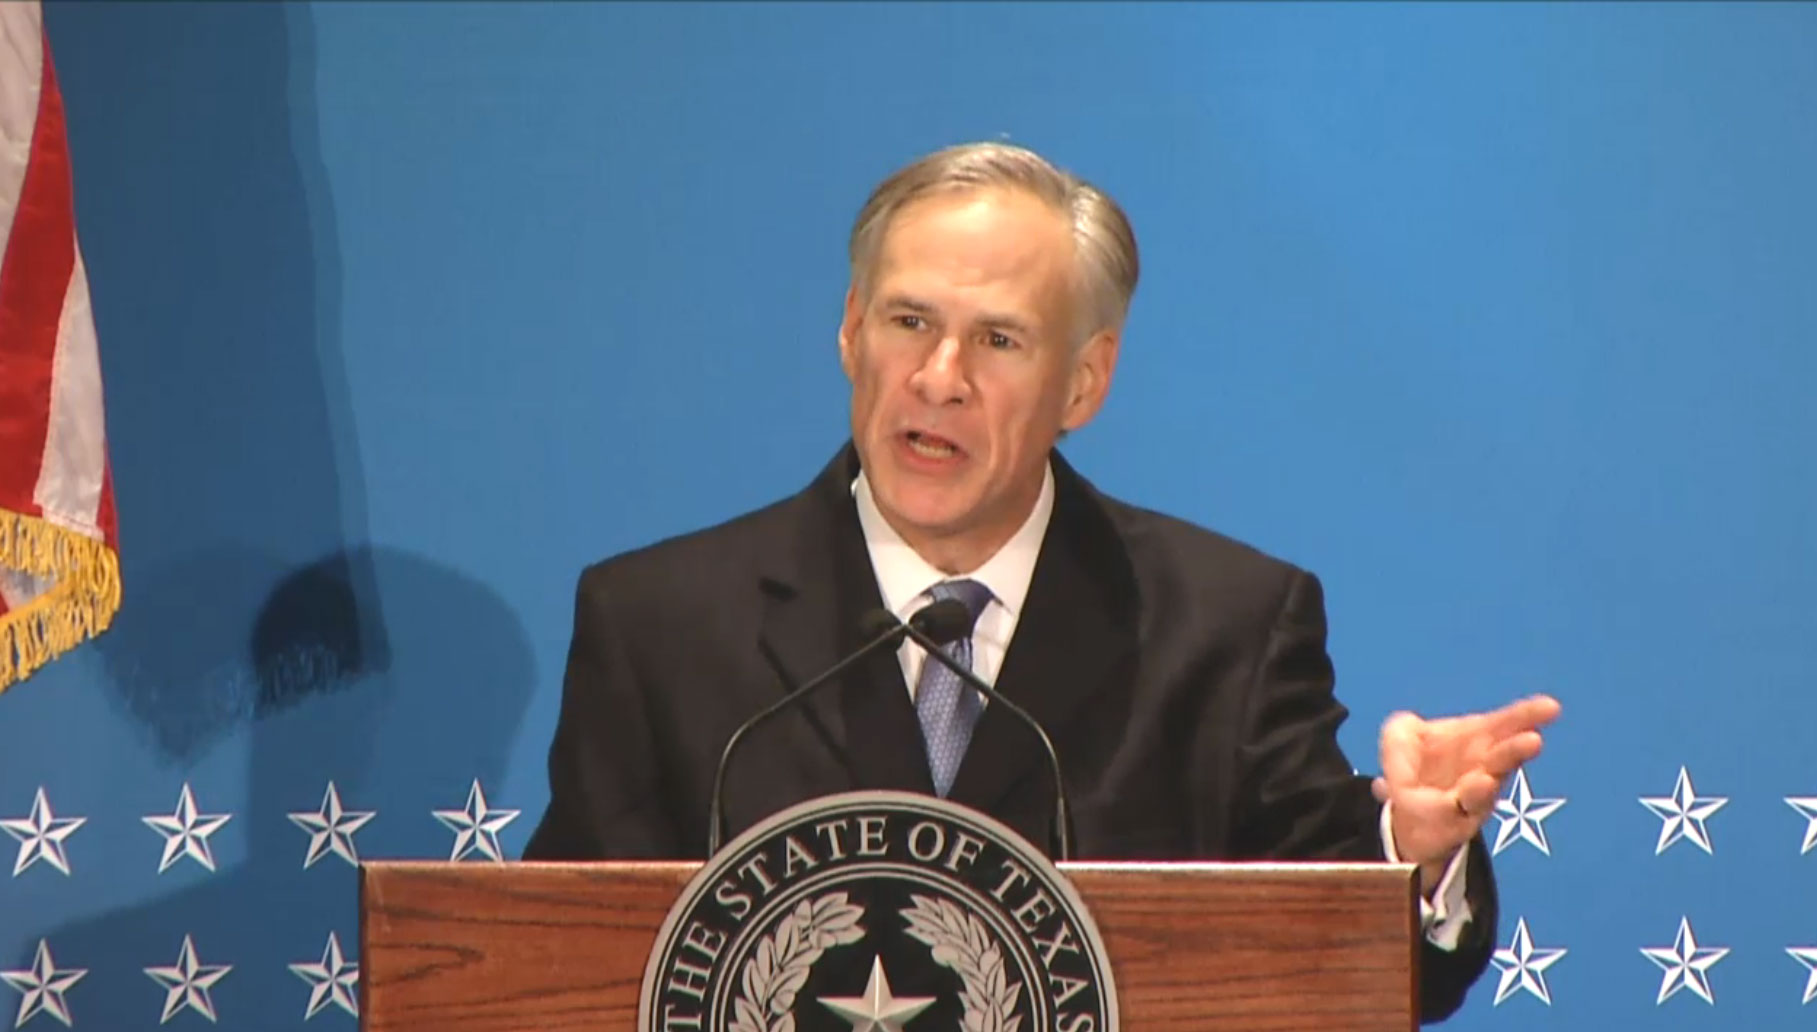 Governor Greg Abbott speaking at the podium